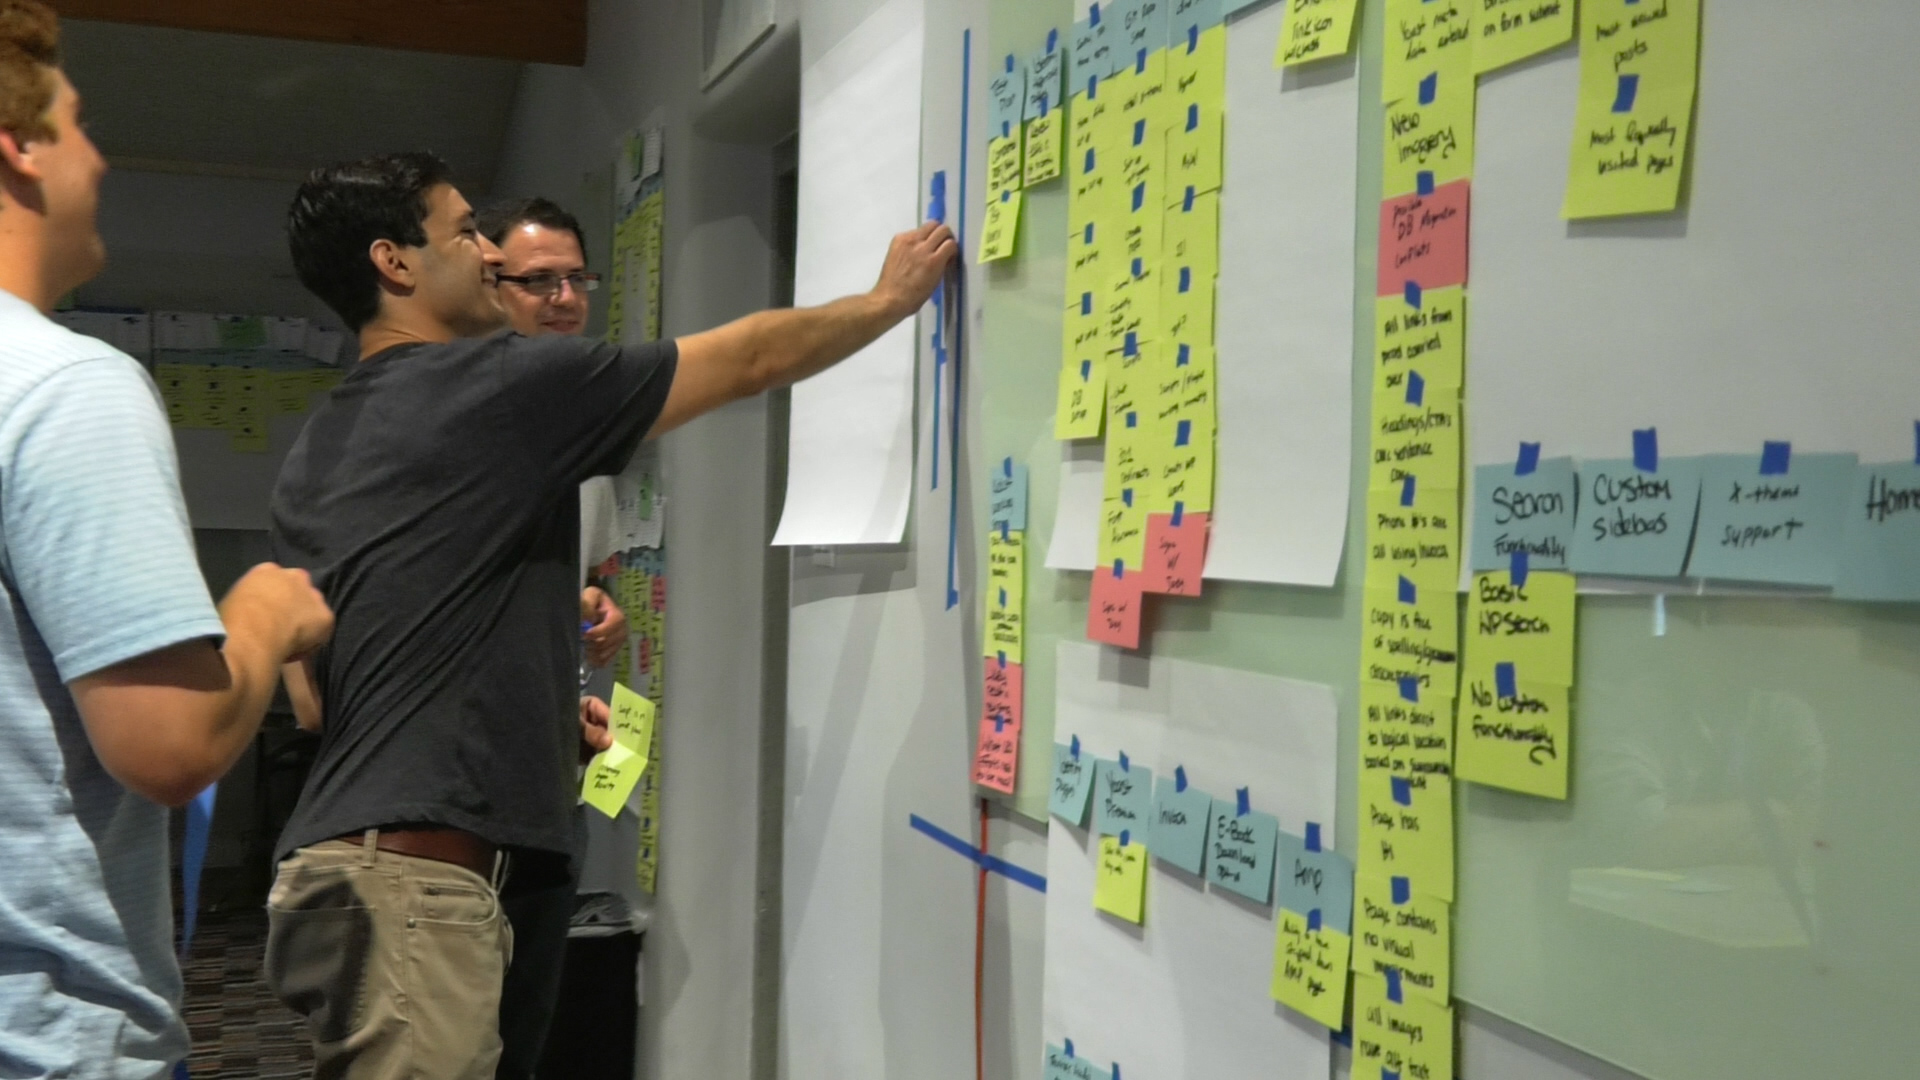 The LaneTerralever Team Roadmapping